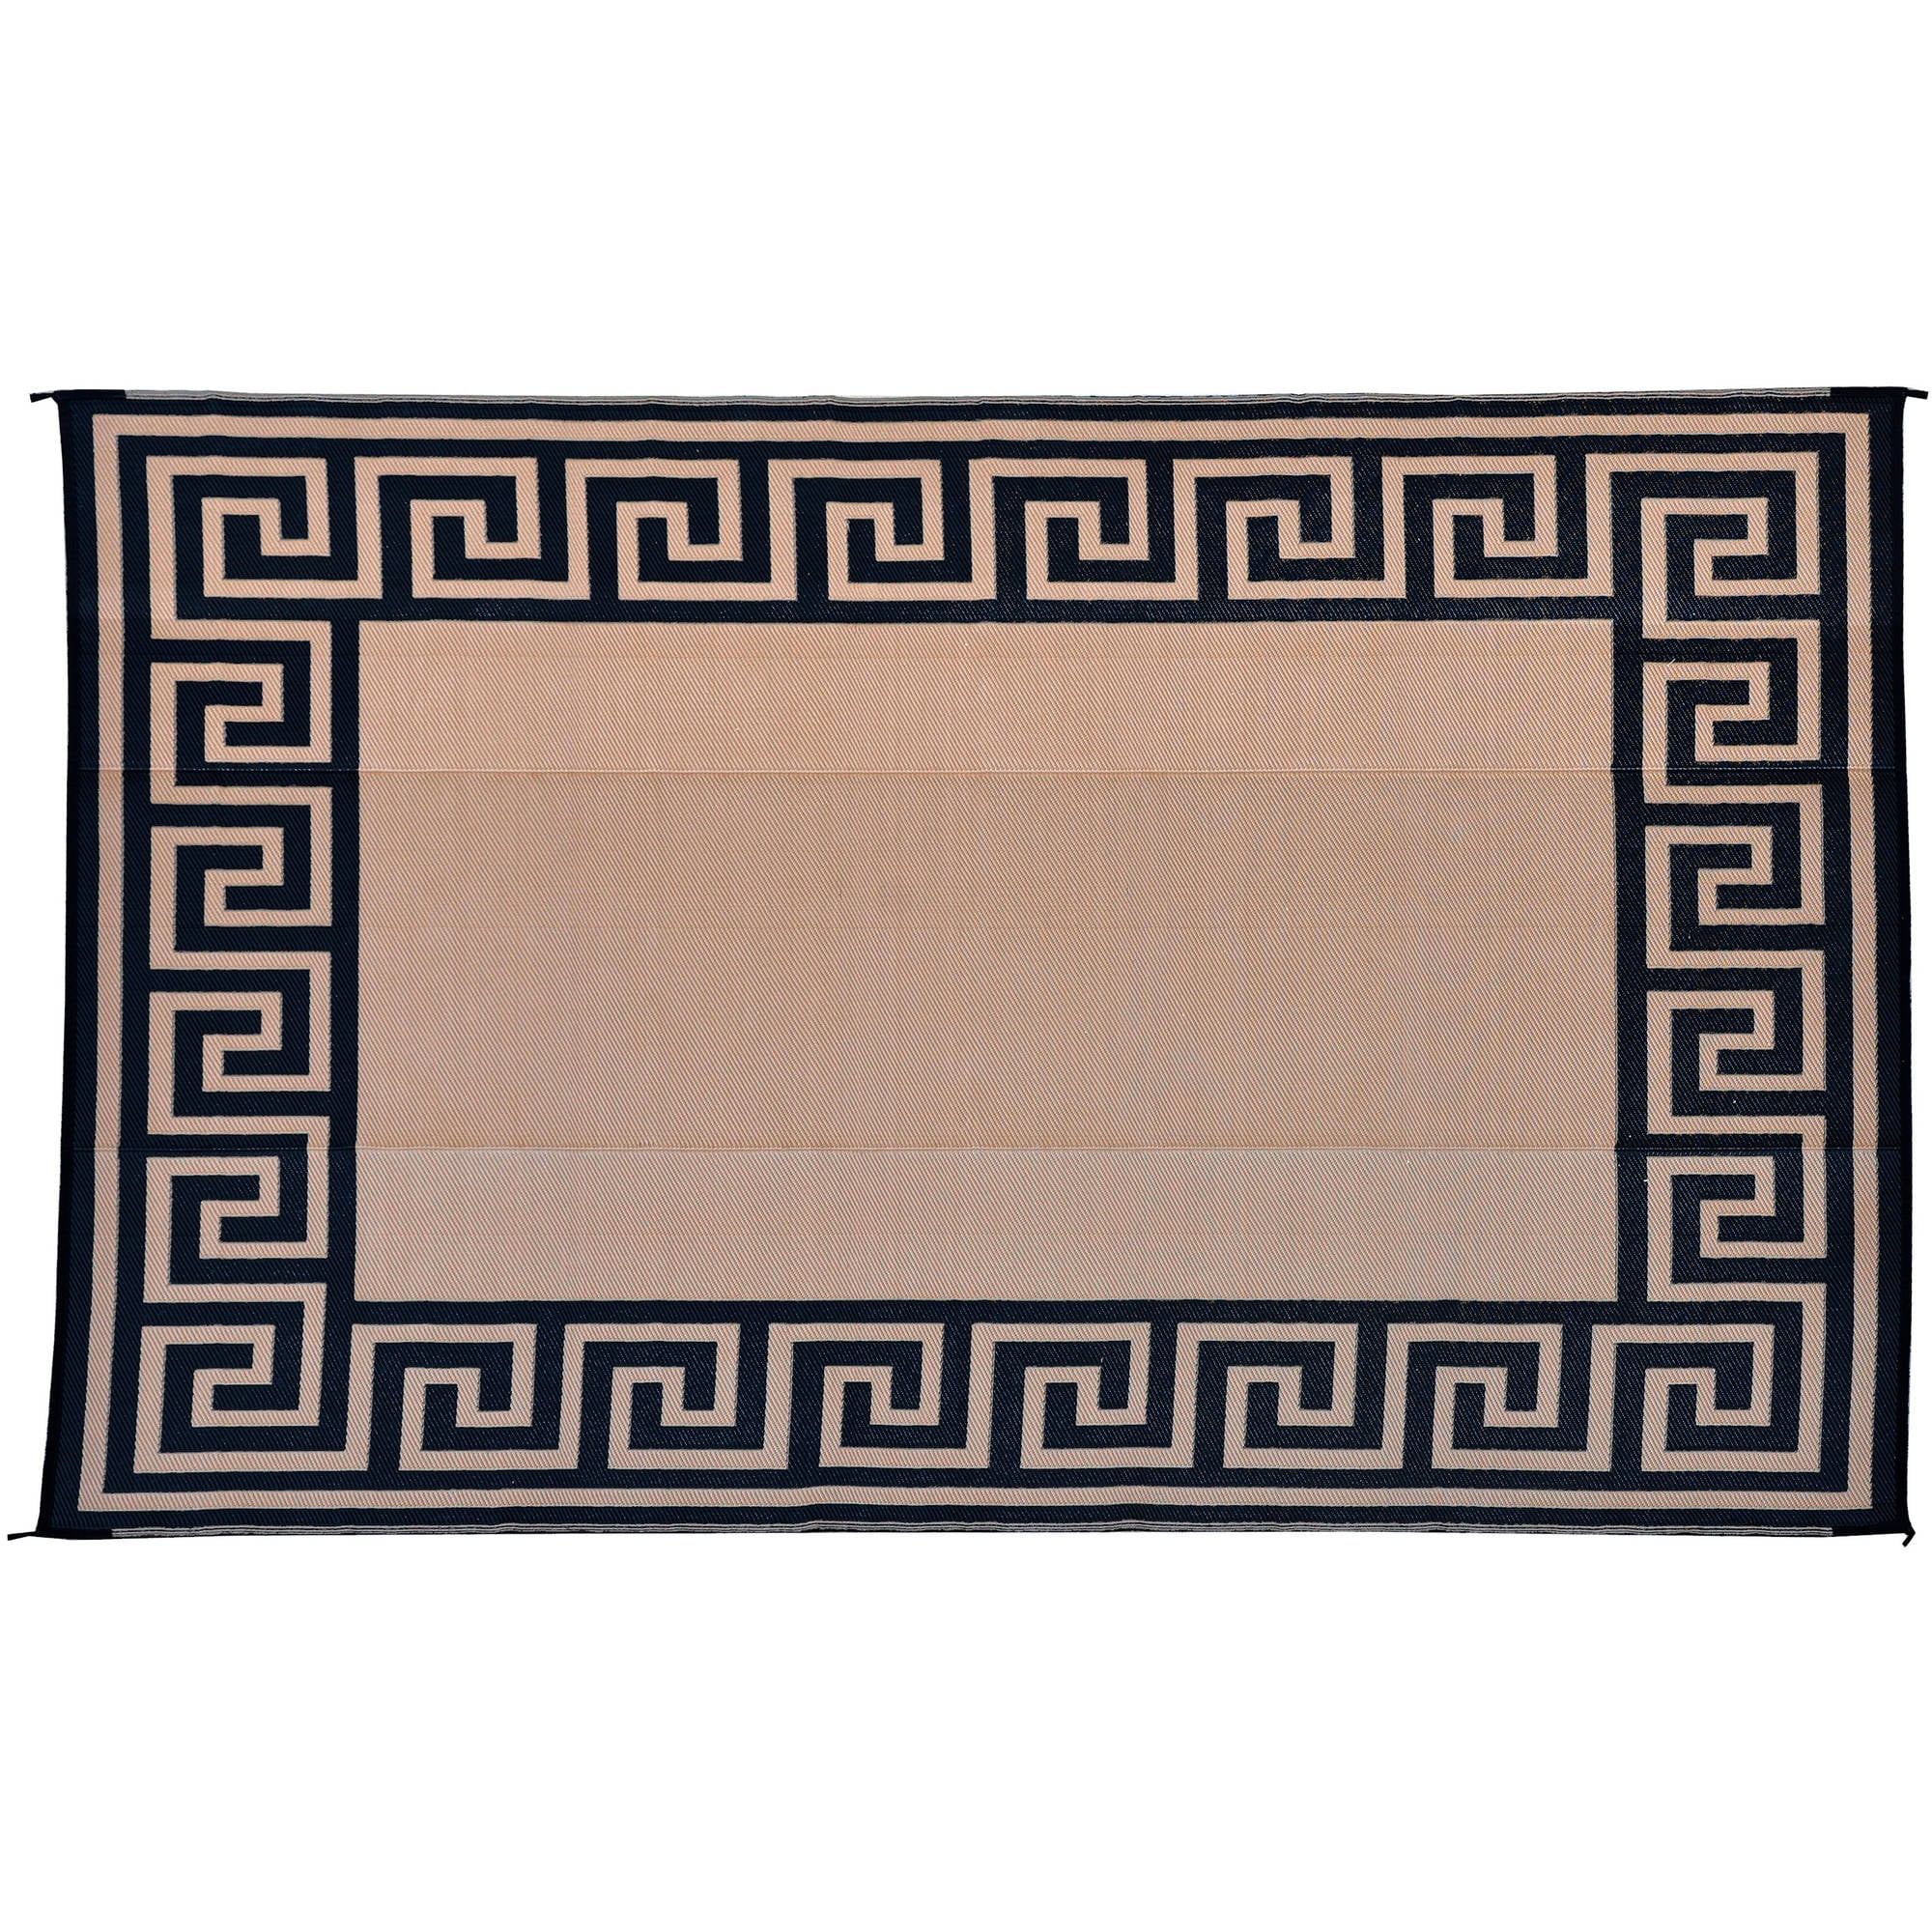 com bellevuelittletheatre tag cool rv archives mats mat rug rugs amazon best of patio outdoor lovely beautiful